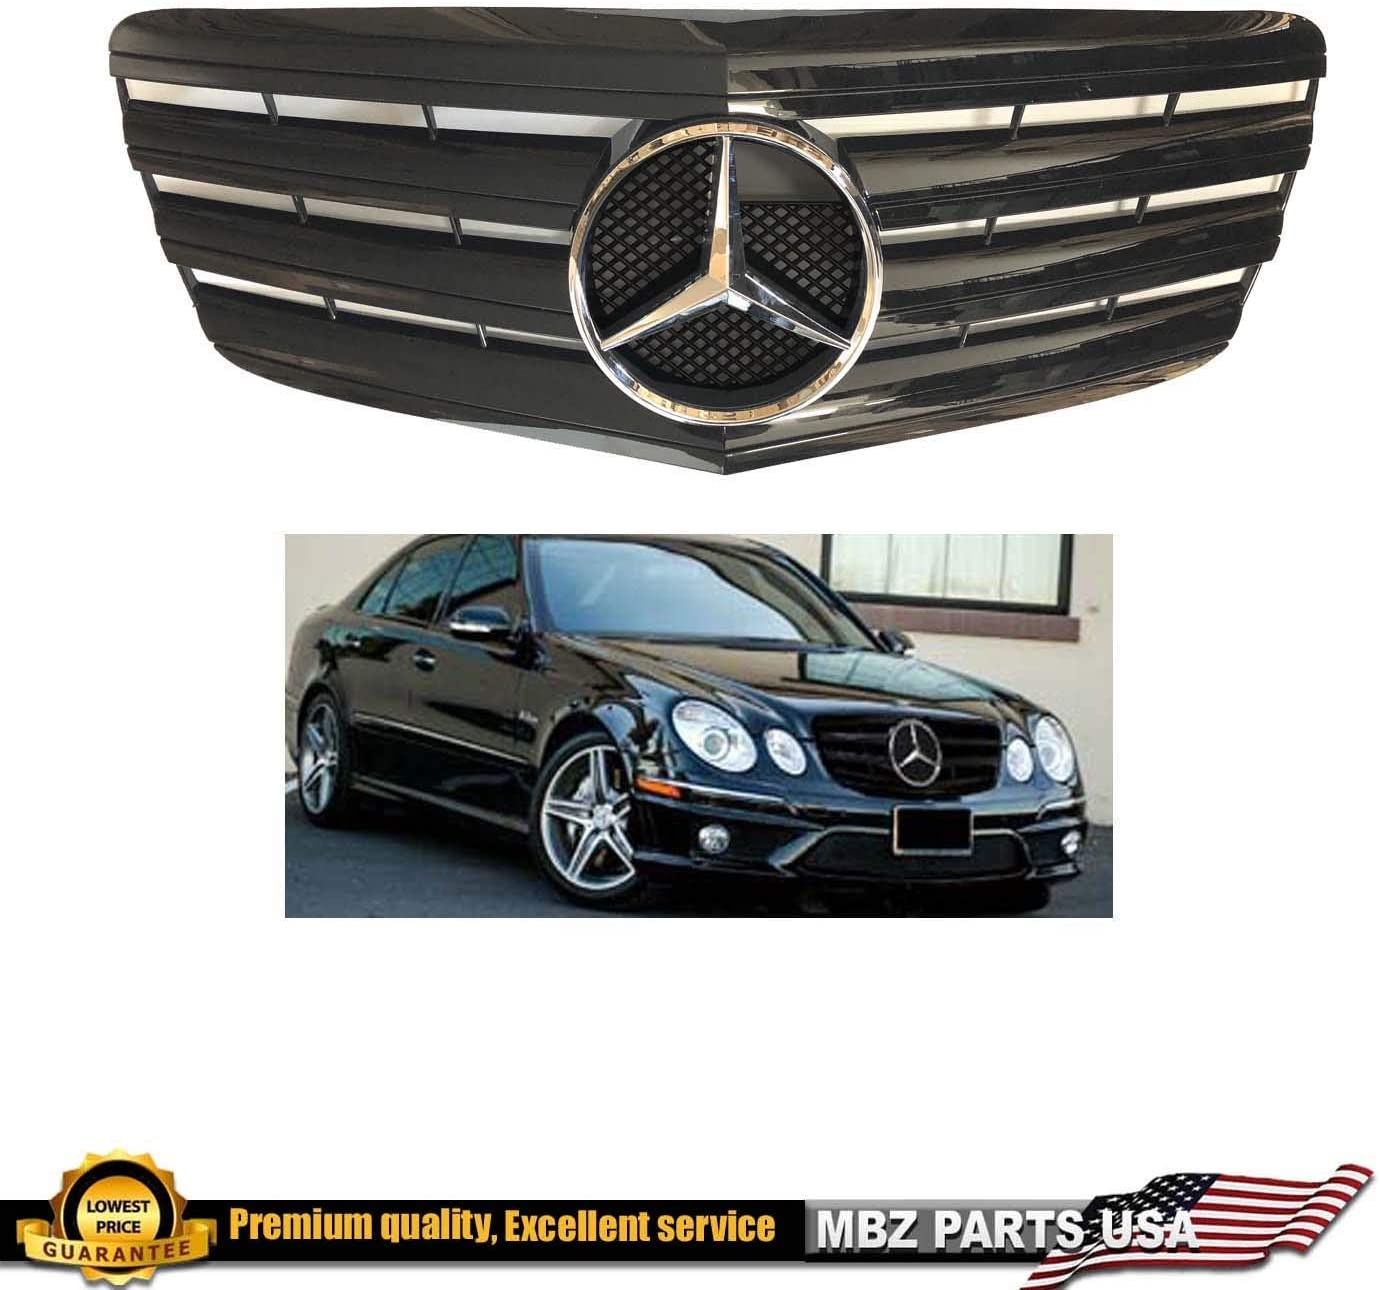 Mercedes Benz E Class 2007 2008 2009 All Black Glossy Grille With Chrome Oem Star E550 E350 E63 Emblem Custom Front New Part Grille Inserts Amazon Canada